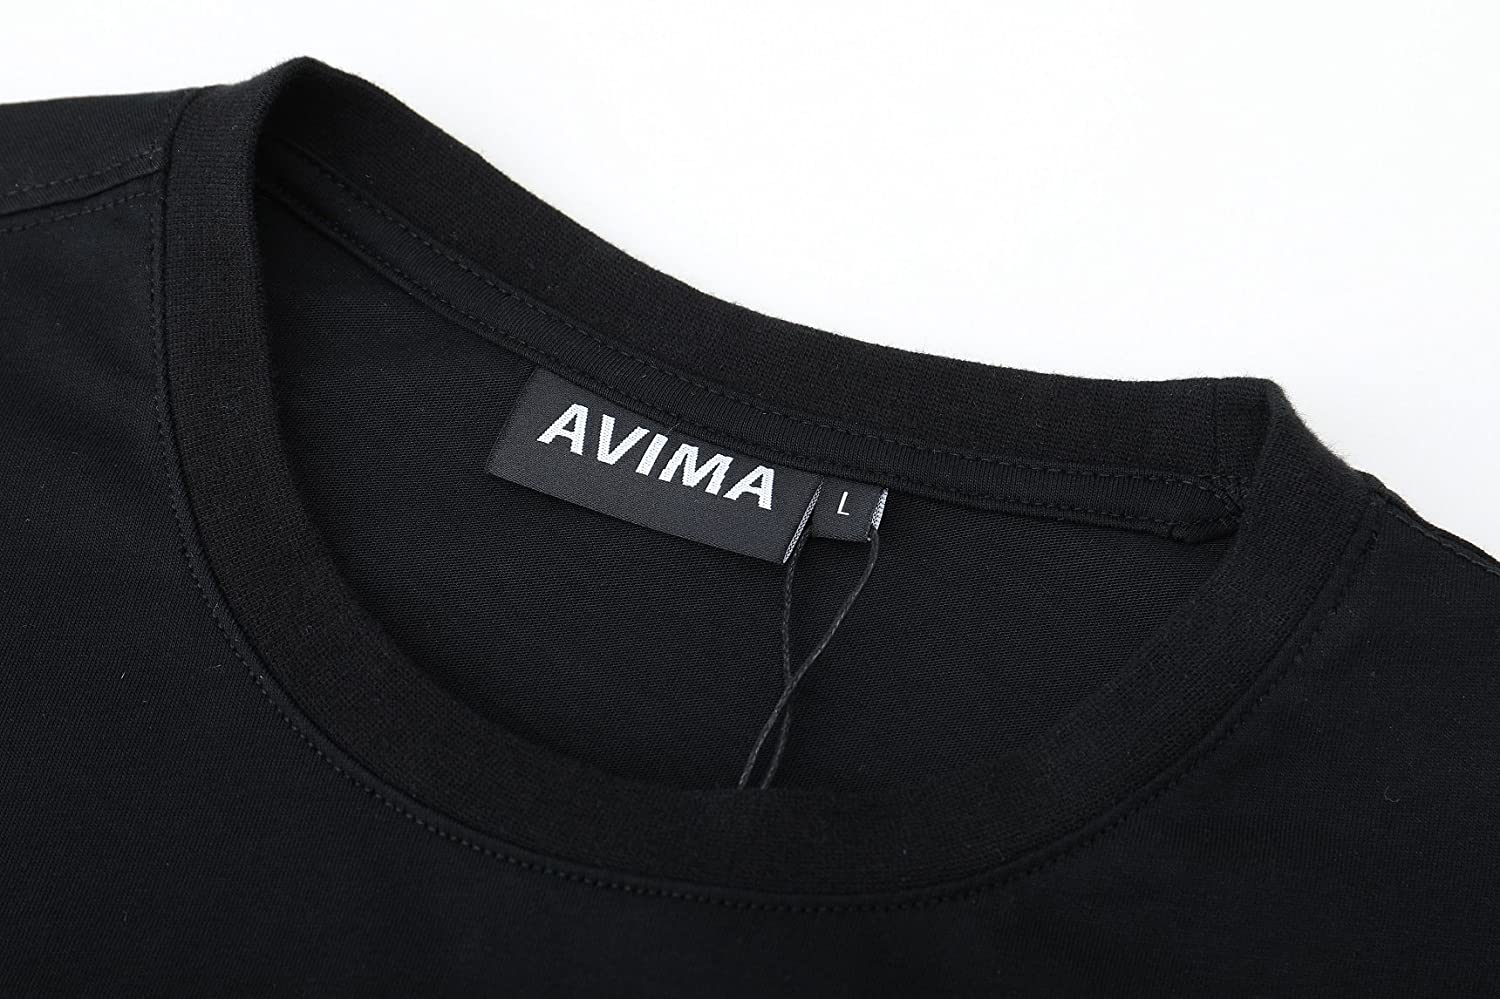 AVIMA Classic Mens Shirt Regular Fit Super-Soft Cotton /& Athletic Fit